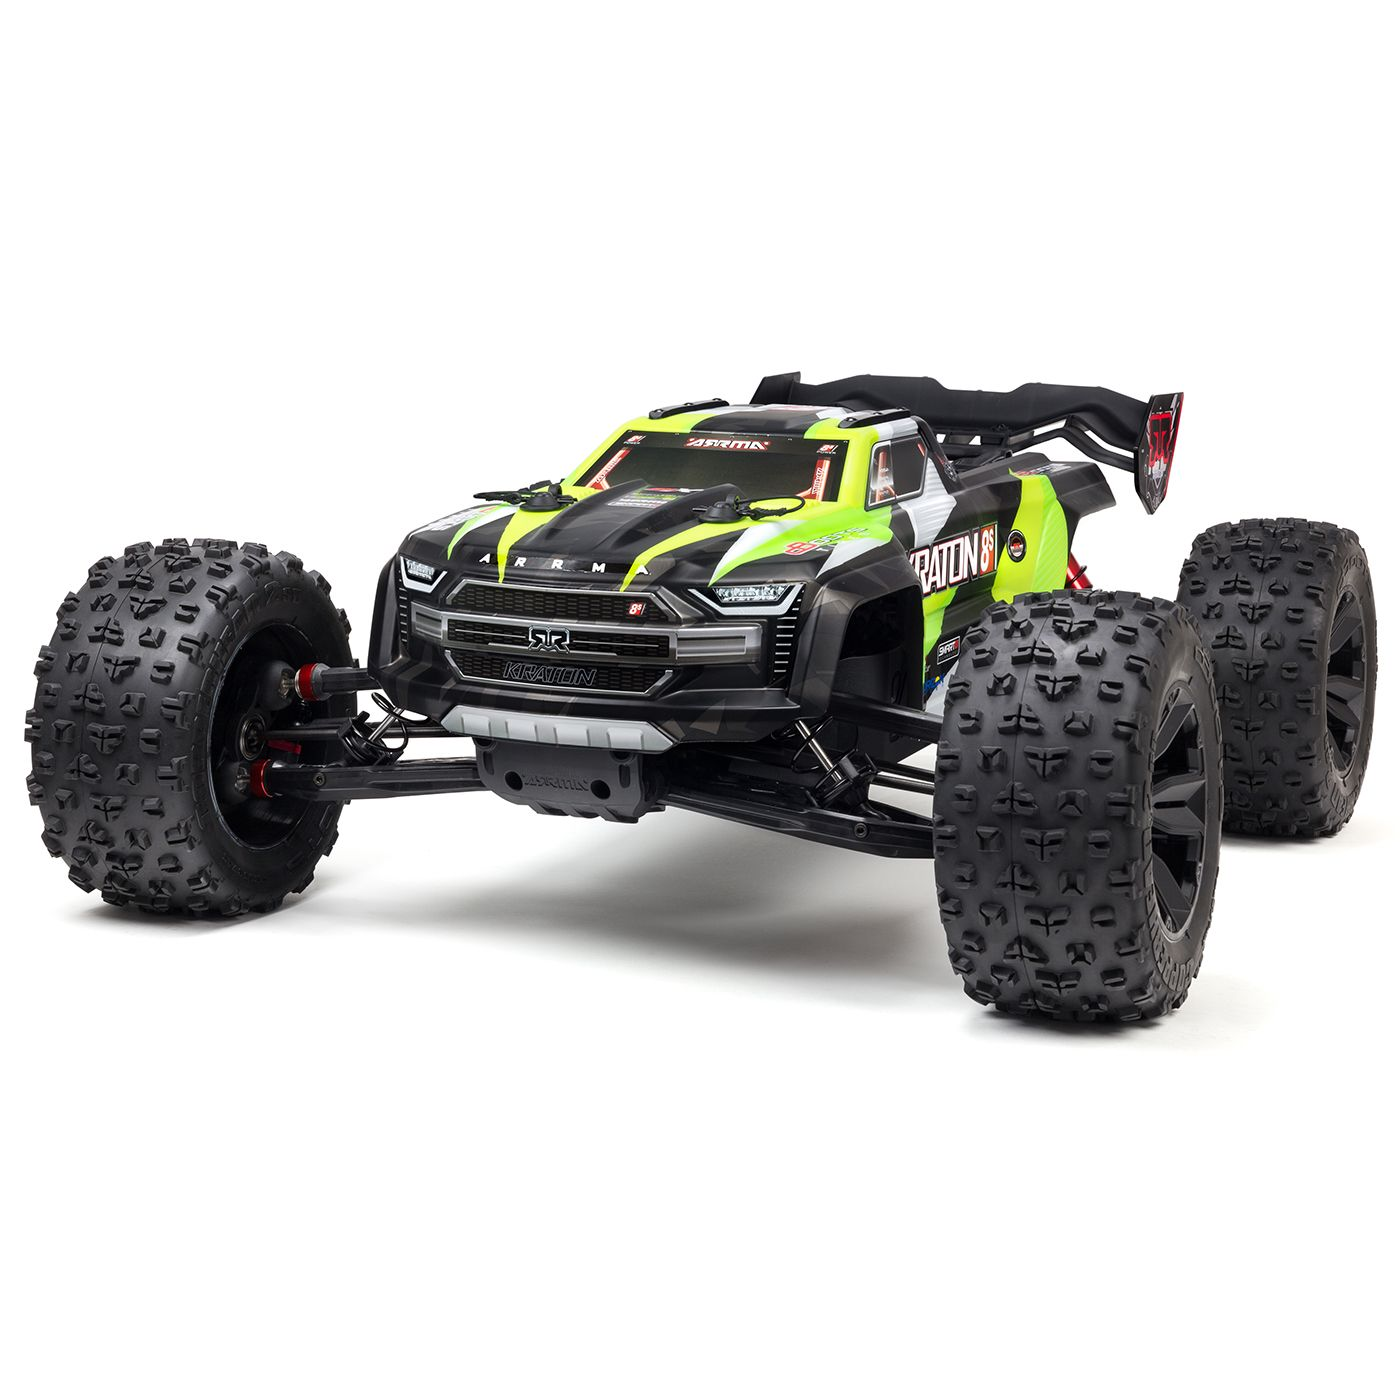 "ARRMA 1/5 KRATON 4X4 8S BLX Brushless Speed Monster Truck RTR, Green <font color=""red""><b>(PREORDER)</b></font>"